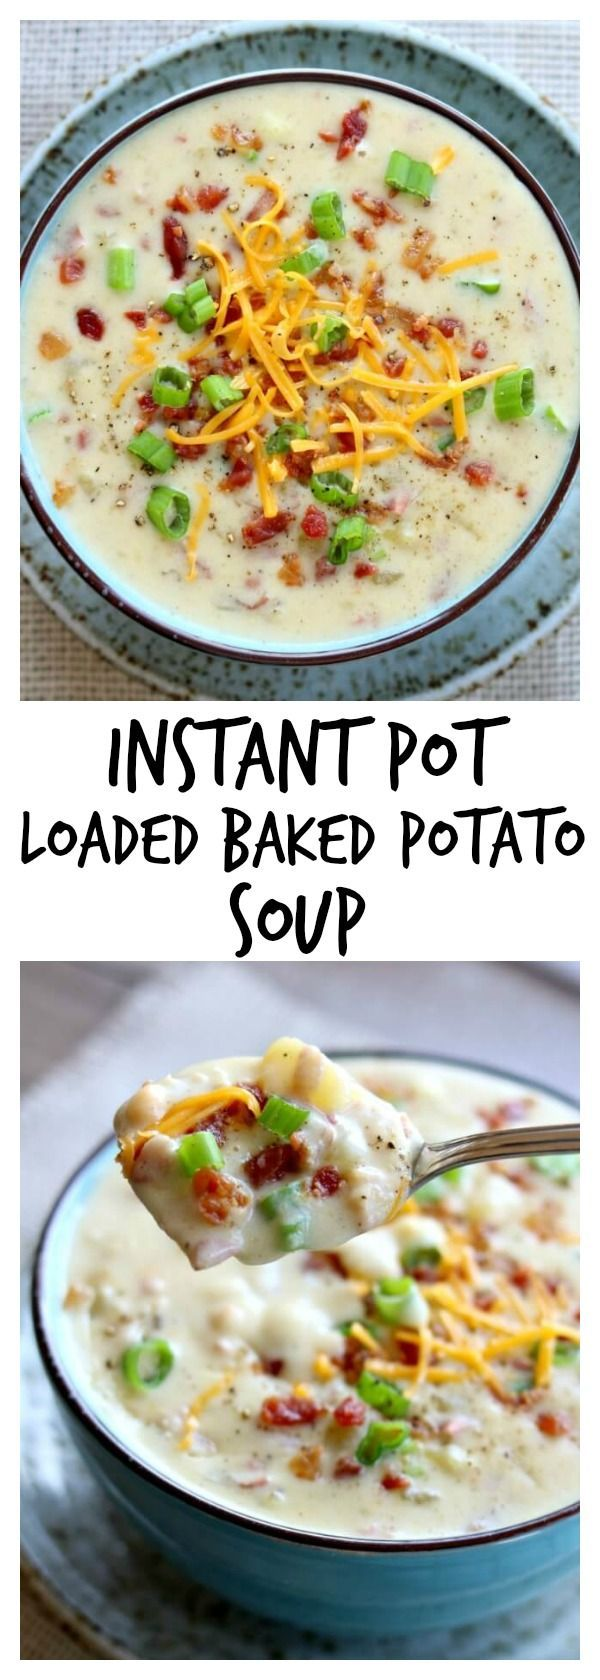 Pot Loaded Baked Potato Soup Instant Pot Loaded Baked Potato Soup–everything you love about baked potatoes in soup form…cheese, bacon, sour cream, green onions and potatoes. Basically a cheesy potato soup recipe that you can make in your electric pressure cookerInstant Pot Loaded Baked Potato Soup–everything you love about baked pot...